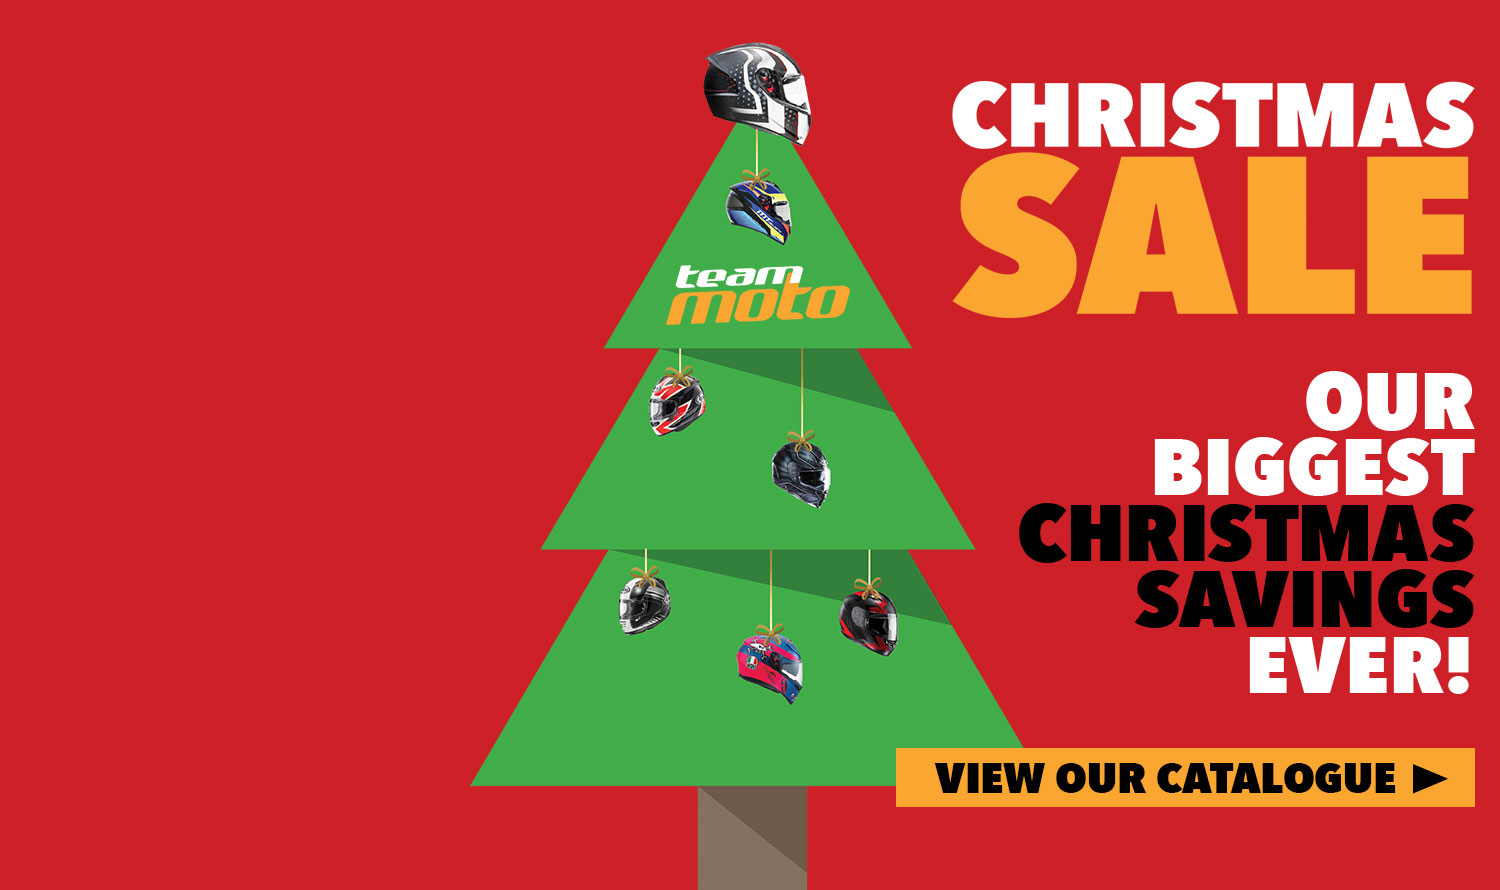 TeamMoto-HBP-ChristmasSale-Dec18-MR